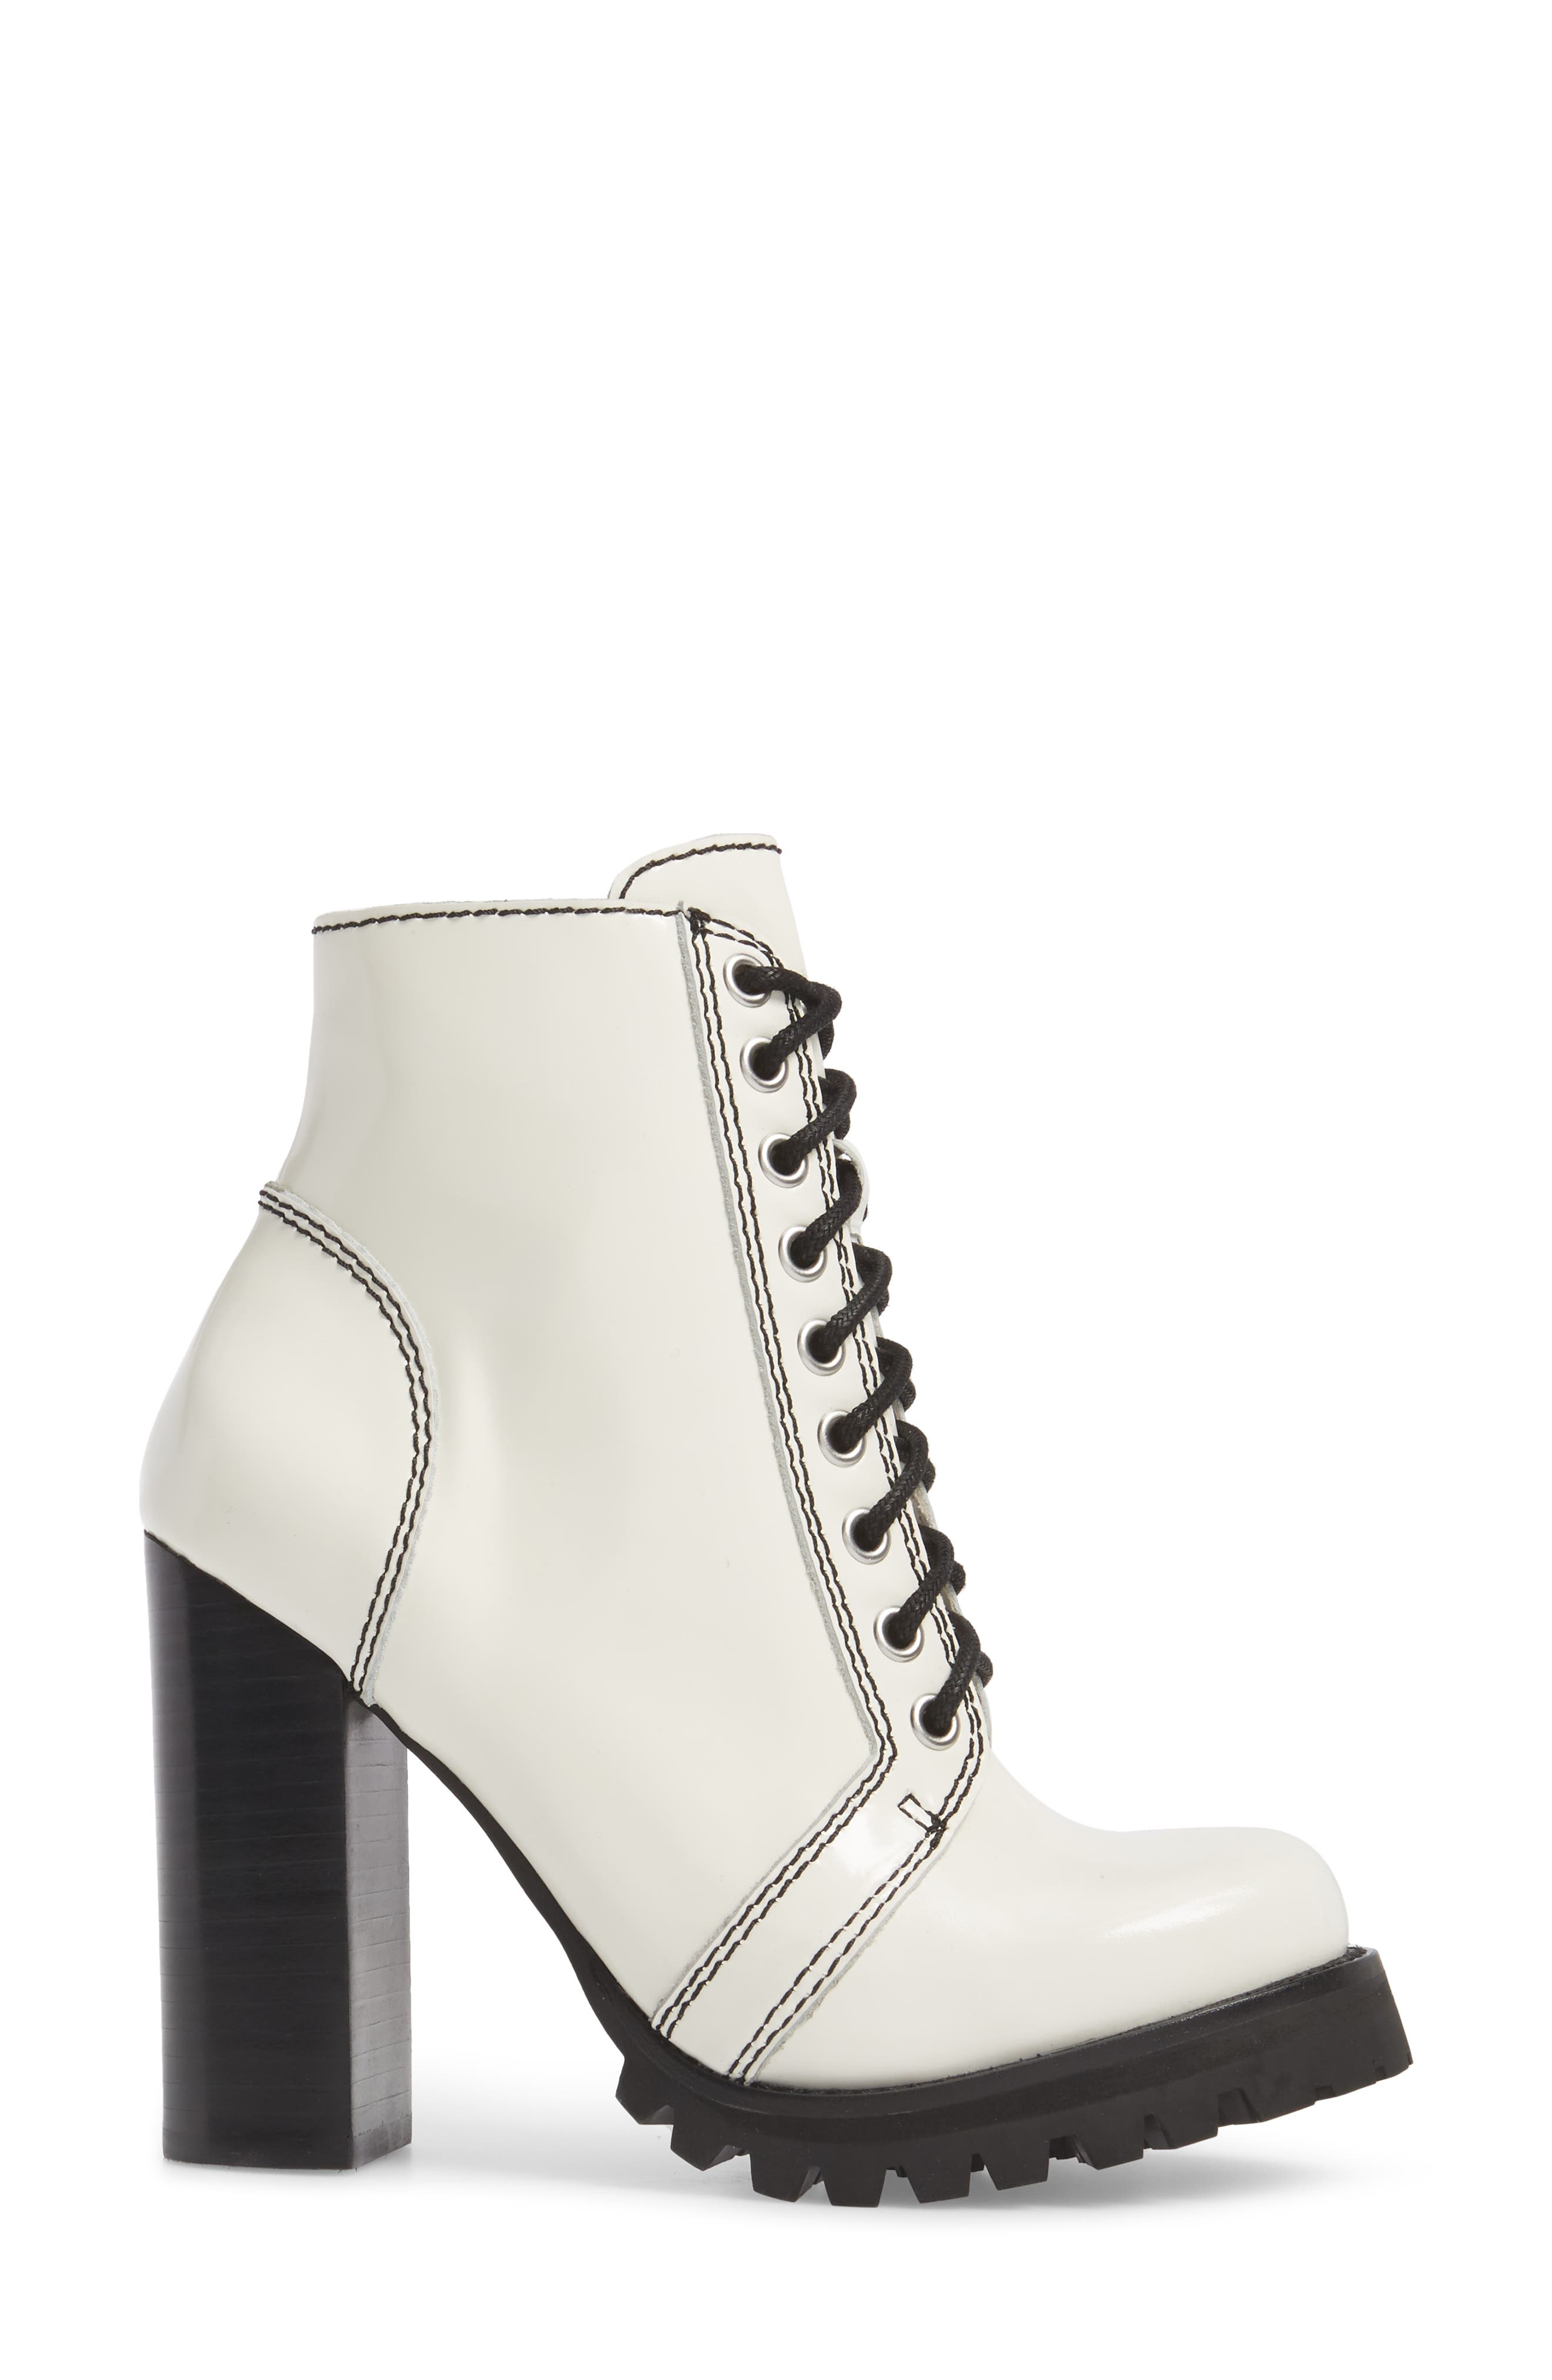 'Legion' High Heel Boot,                             Alternate thumbnail 3, color,                             White Box Black